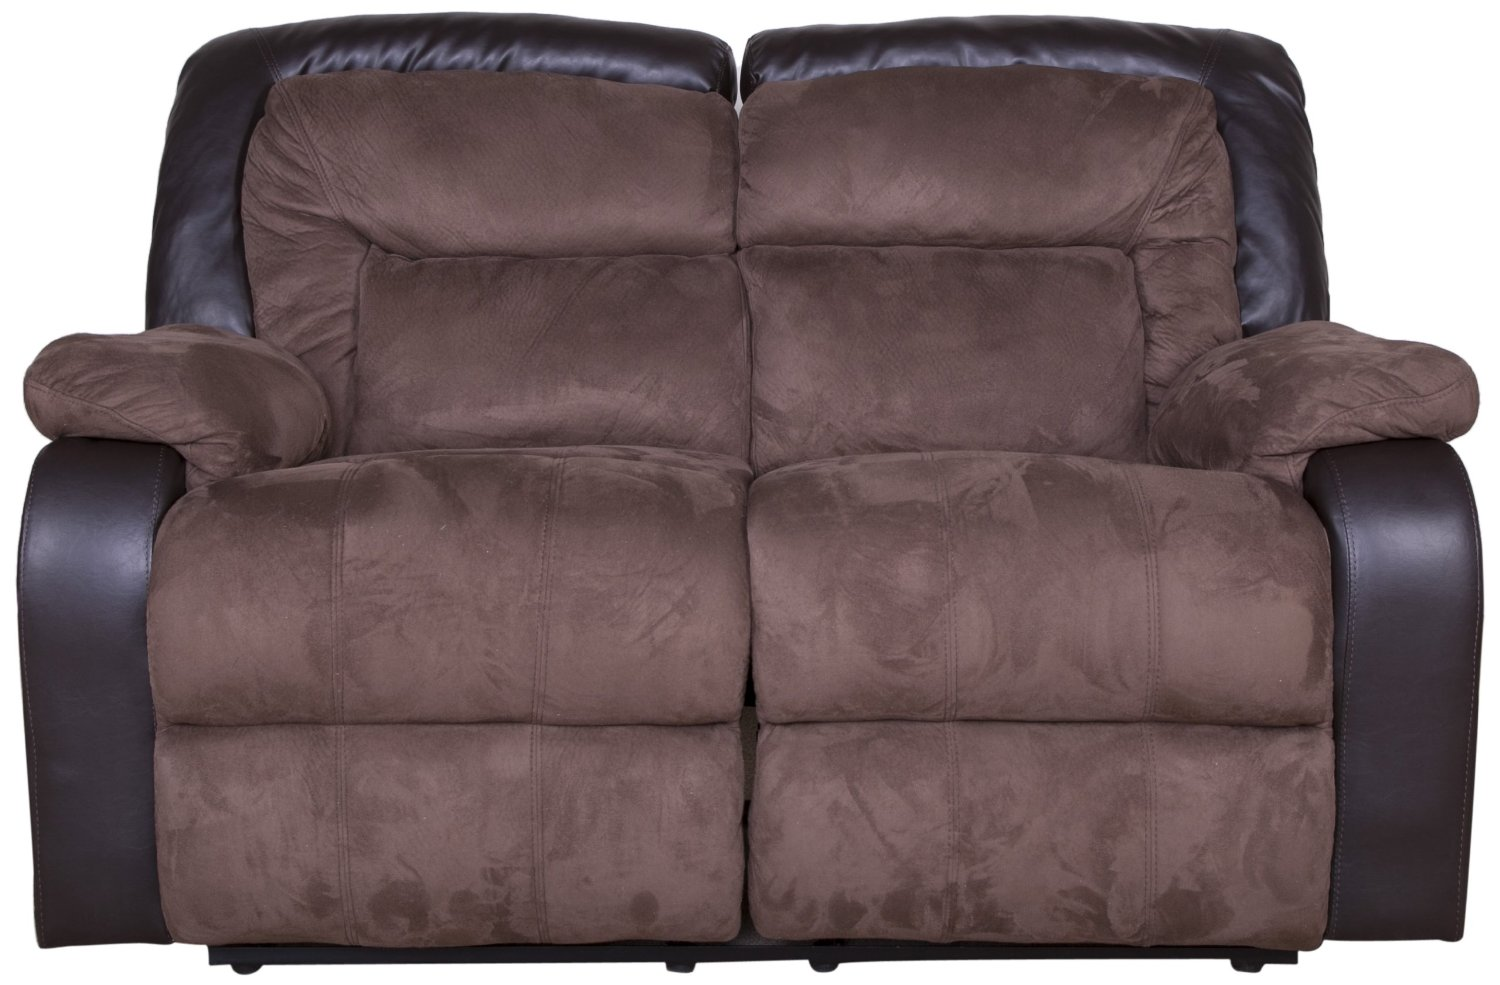 Presley Espresso Reclining Sectional Details Bed